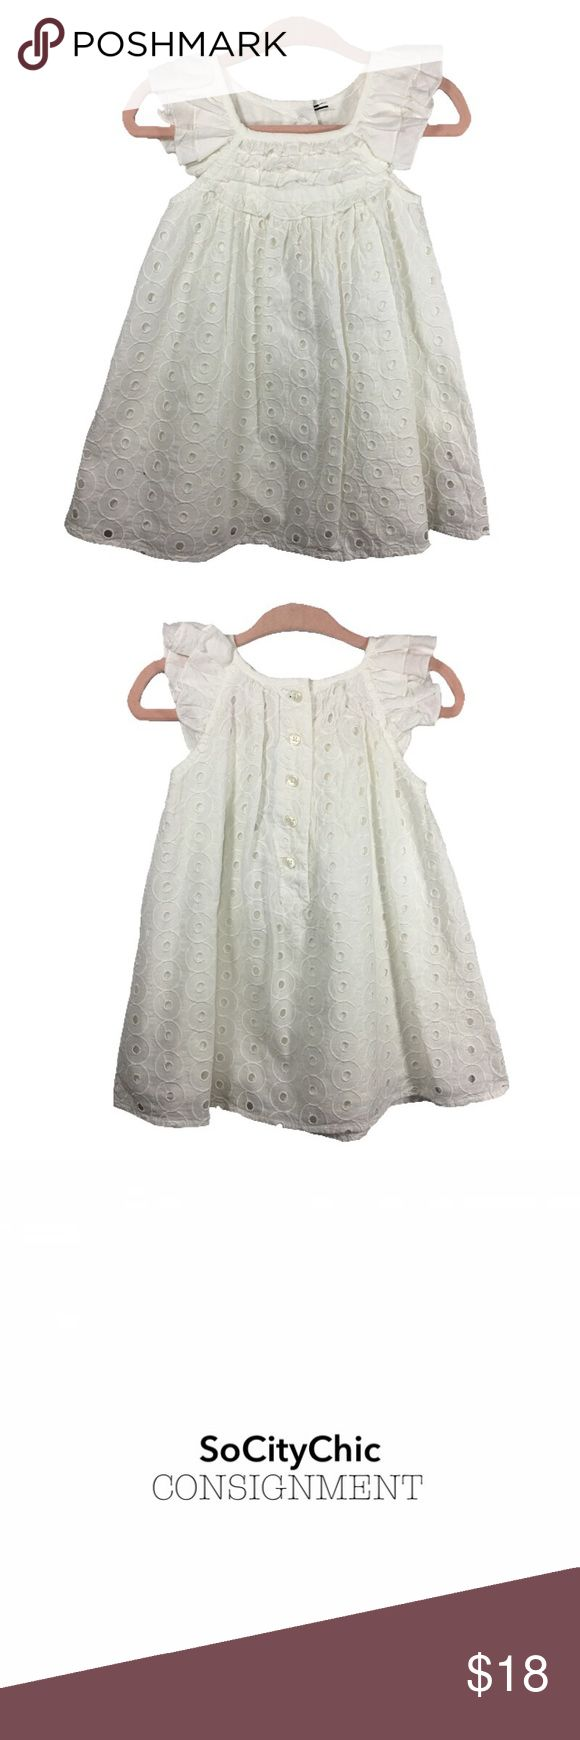 MARKS & SPENCER EYELET DRESS MARKS & SPENCER EYELET DRESS. SLEEVELESS WITH RUFFLE DETAIL. CIRCULAR EYELET DETAIL. CENTER BACK BUTTON UP CLOSURE. FABRIC: COTTON. CONDITION: NWTS. SIZE 3-6M. MARKS & SPENCER Dresses Casual